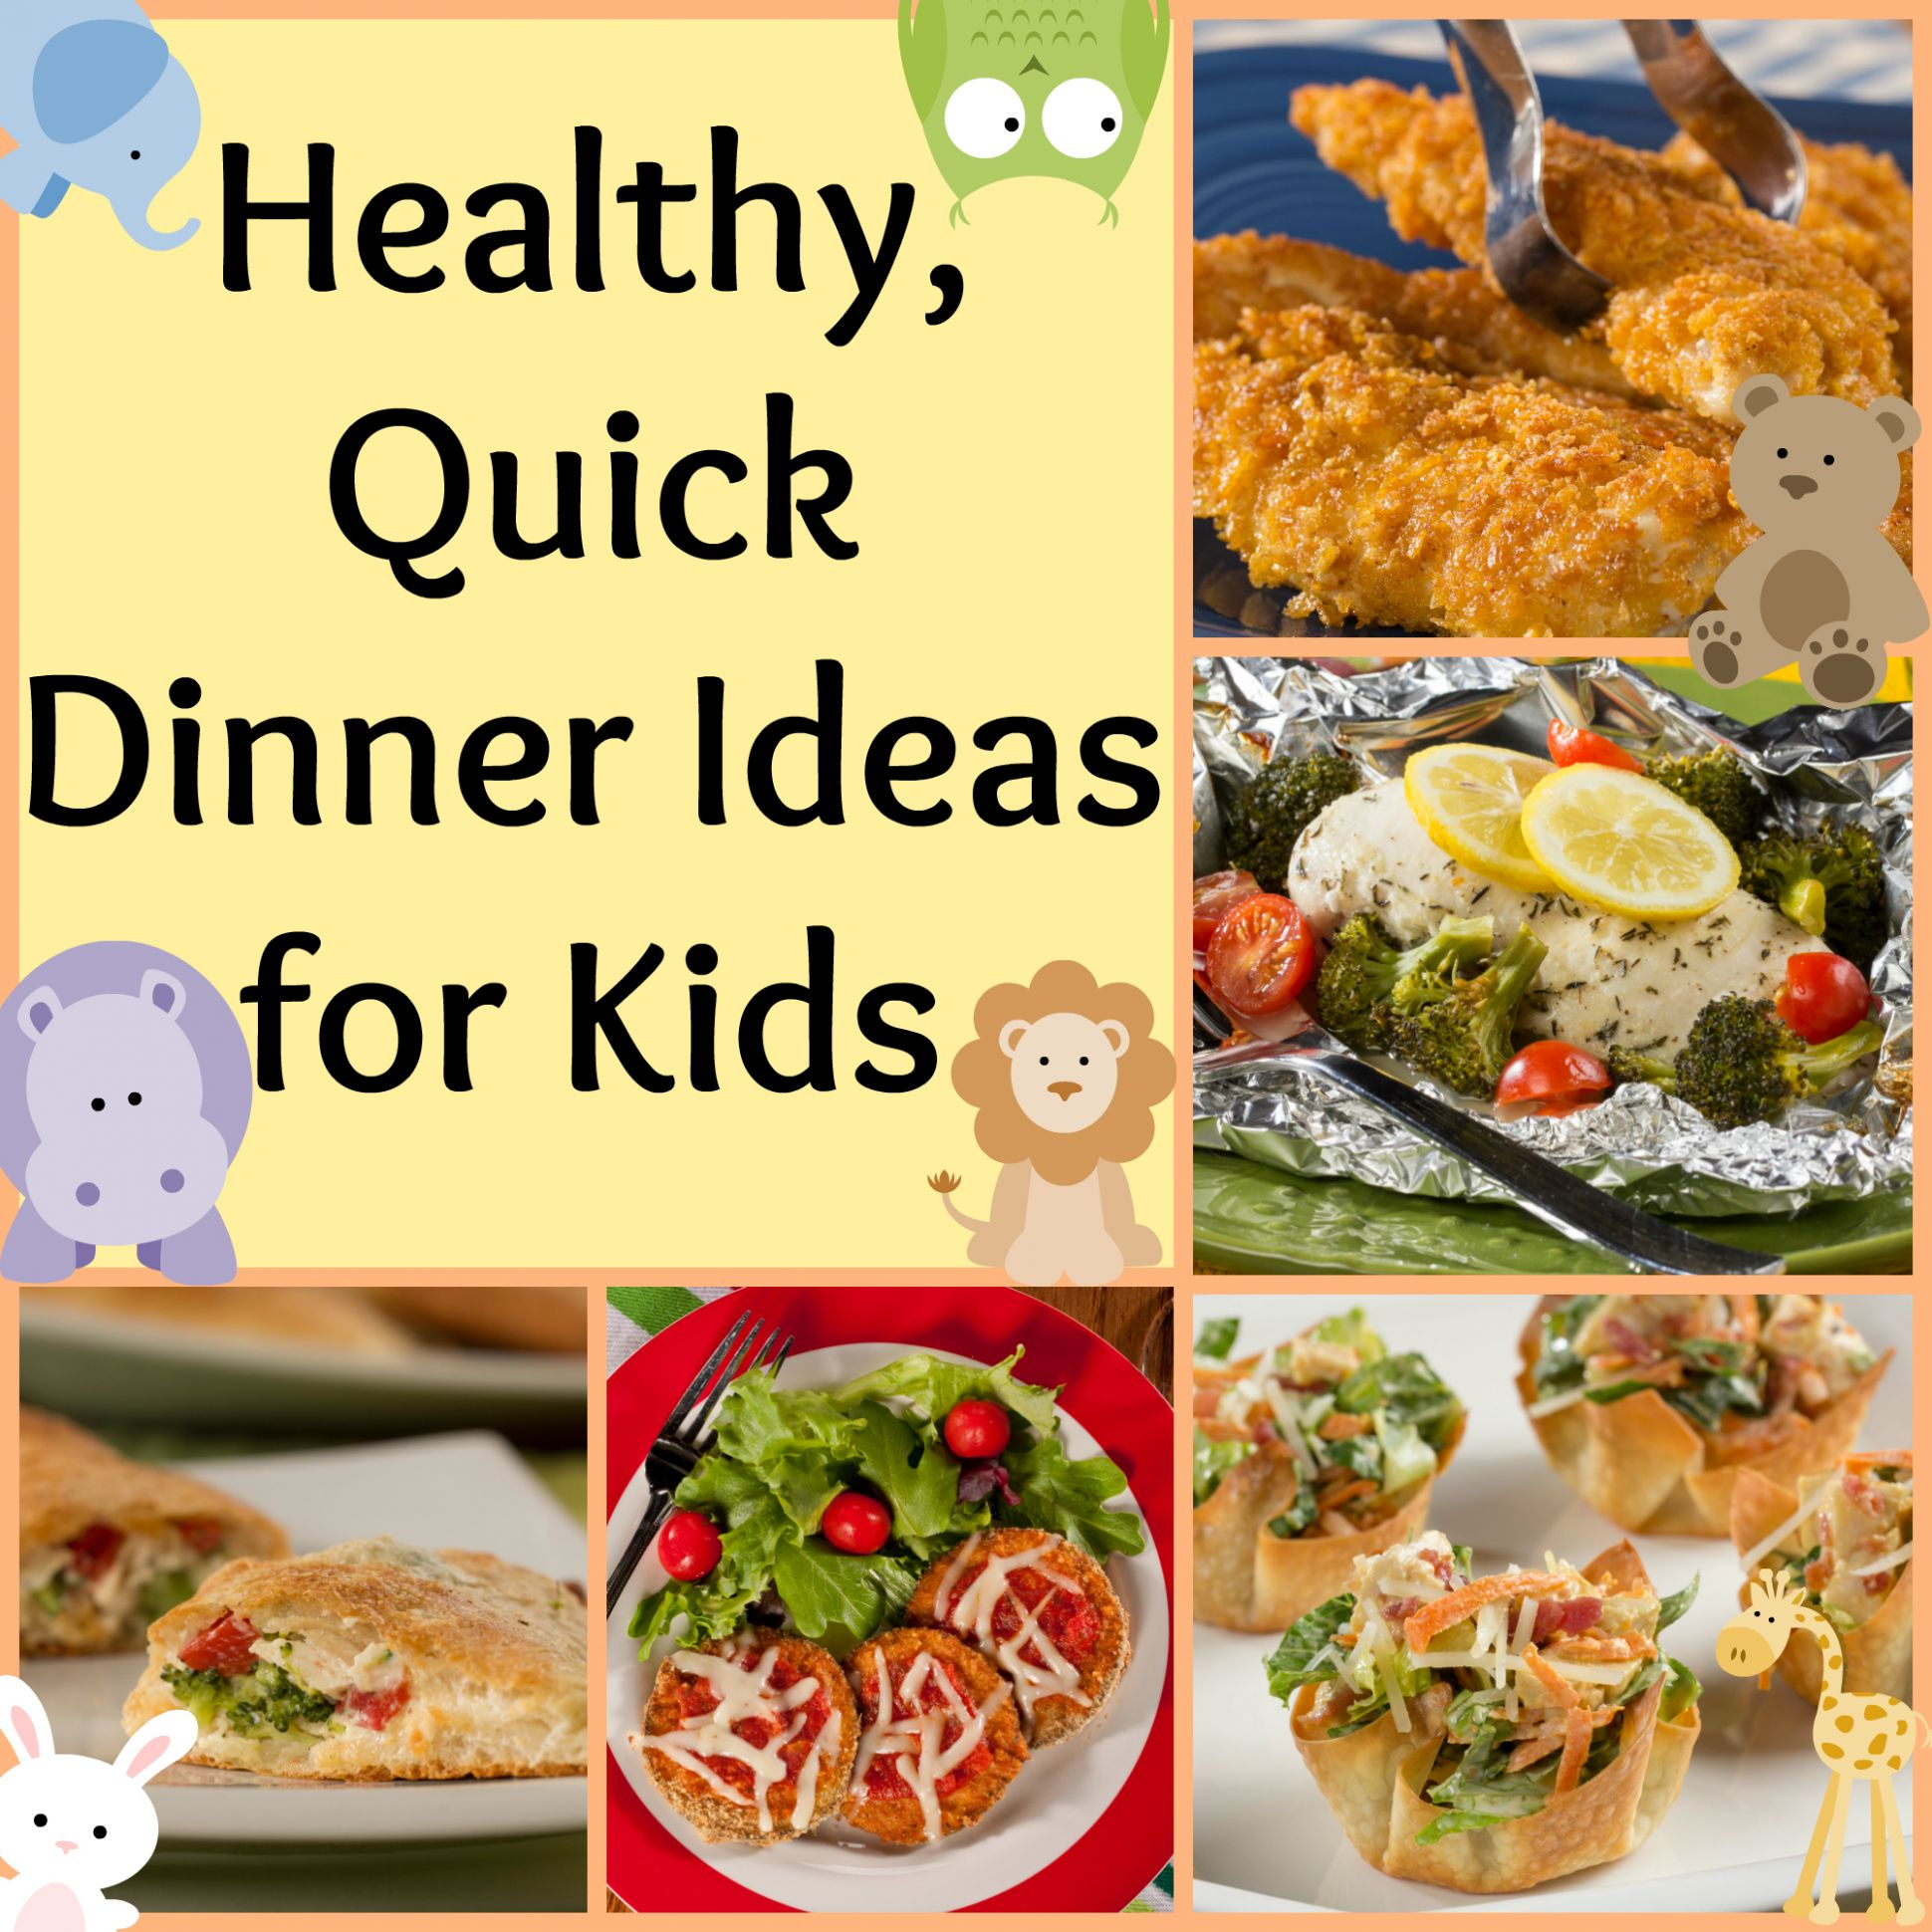 Healthy, Quick Dinner Ideas for Kids - Mr